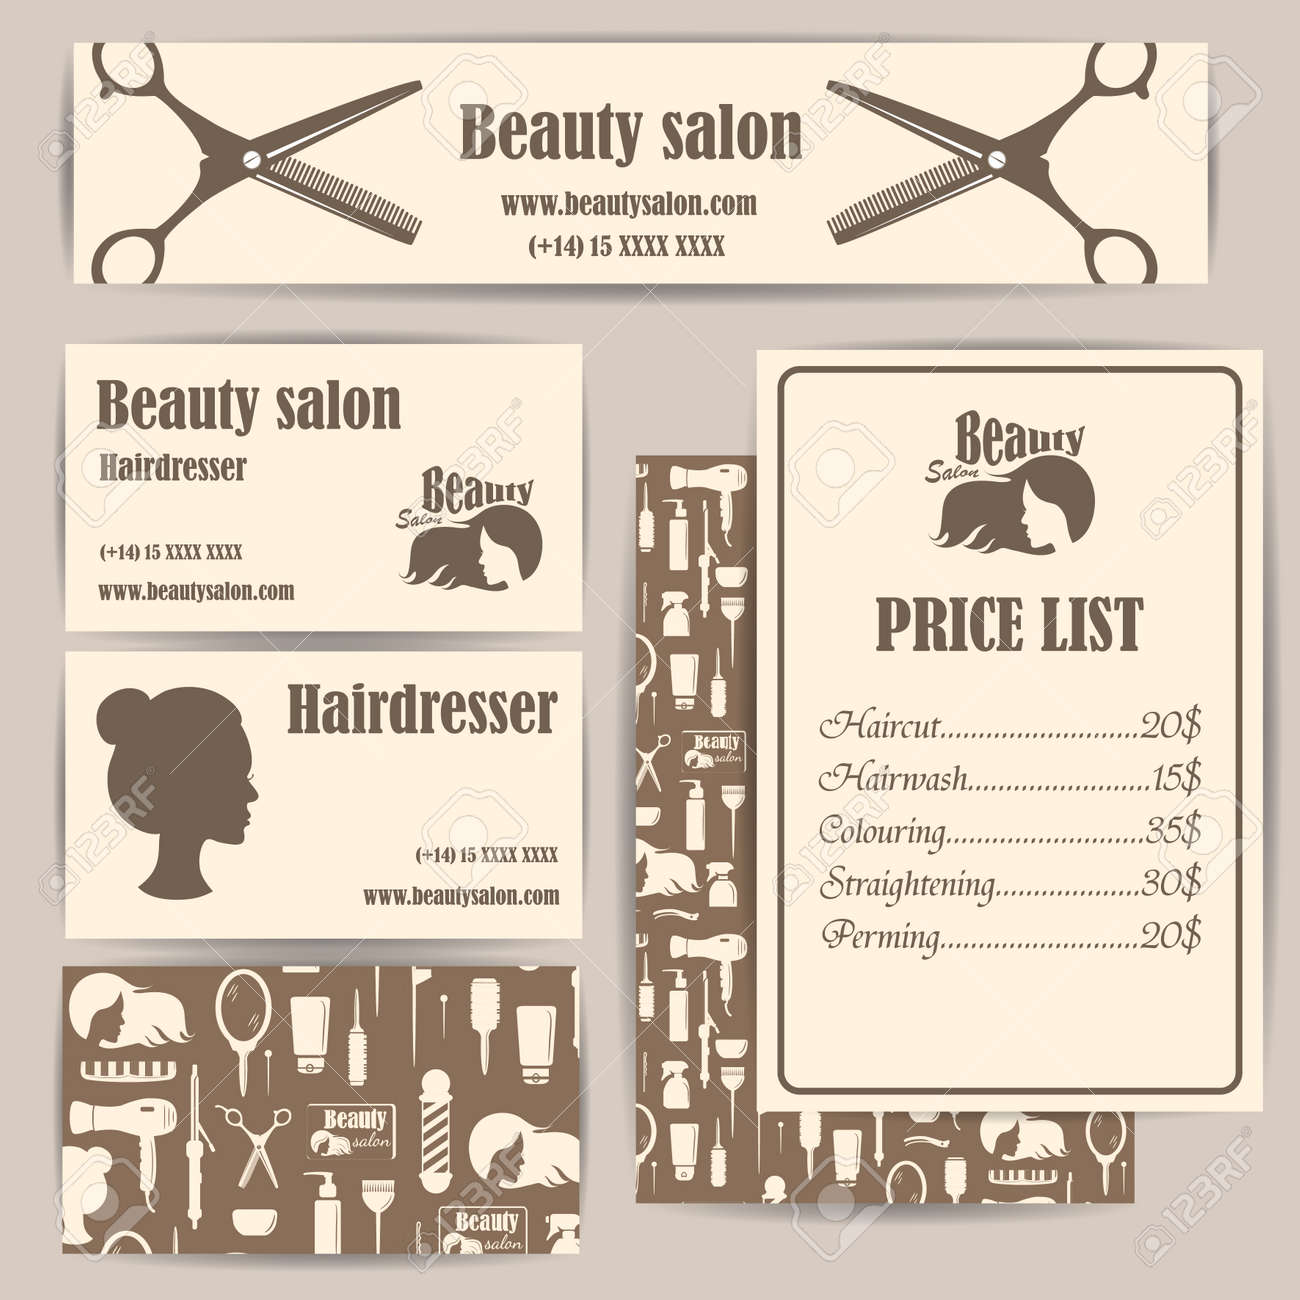 Hairdresser Price List Template from previews.123rf.com